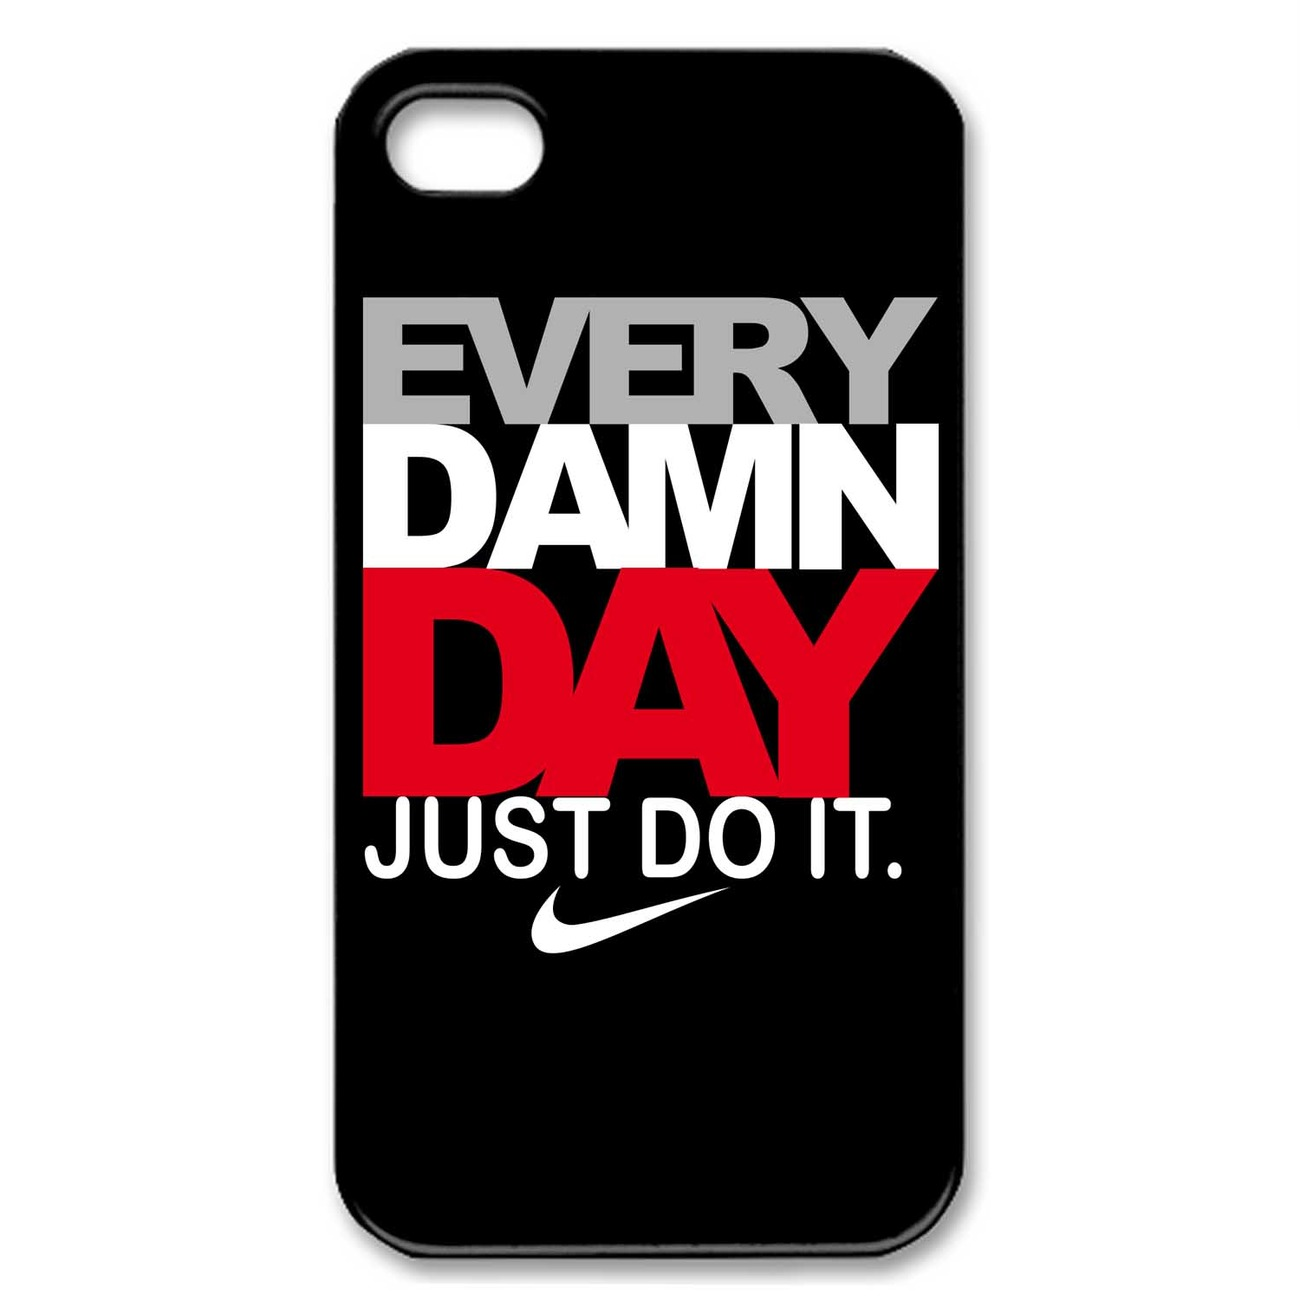 Every Damn Day Just Do It Nike Wallpaper Every Damn Day Just Do...